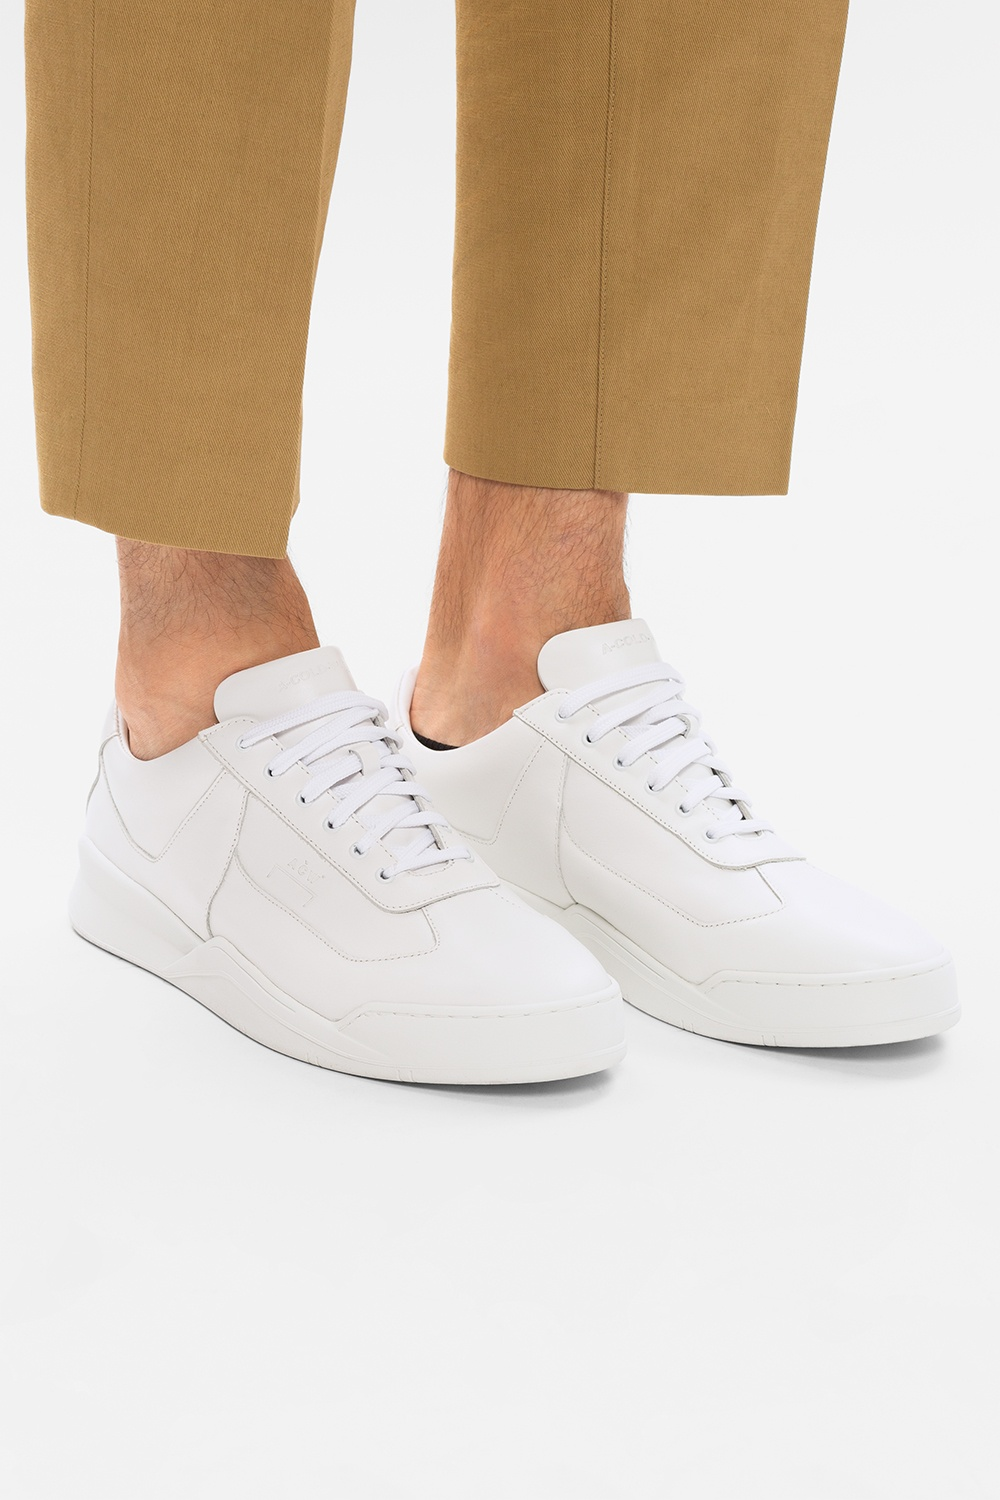 A-COLD-WALL* Logo sneakers